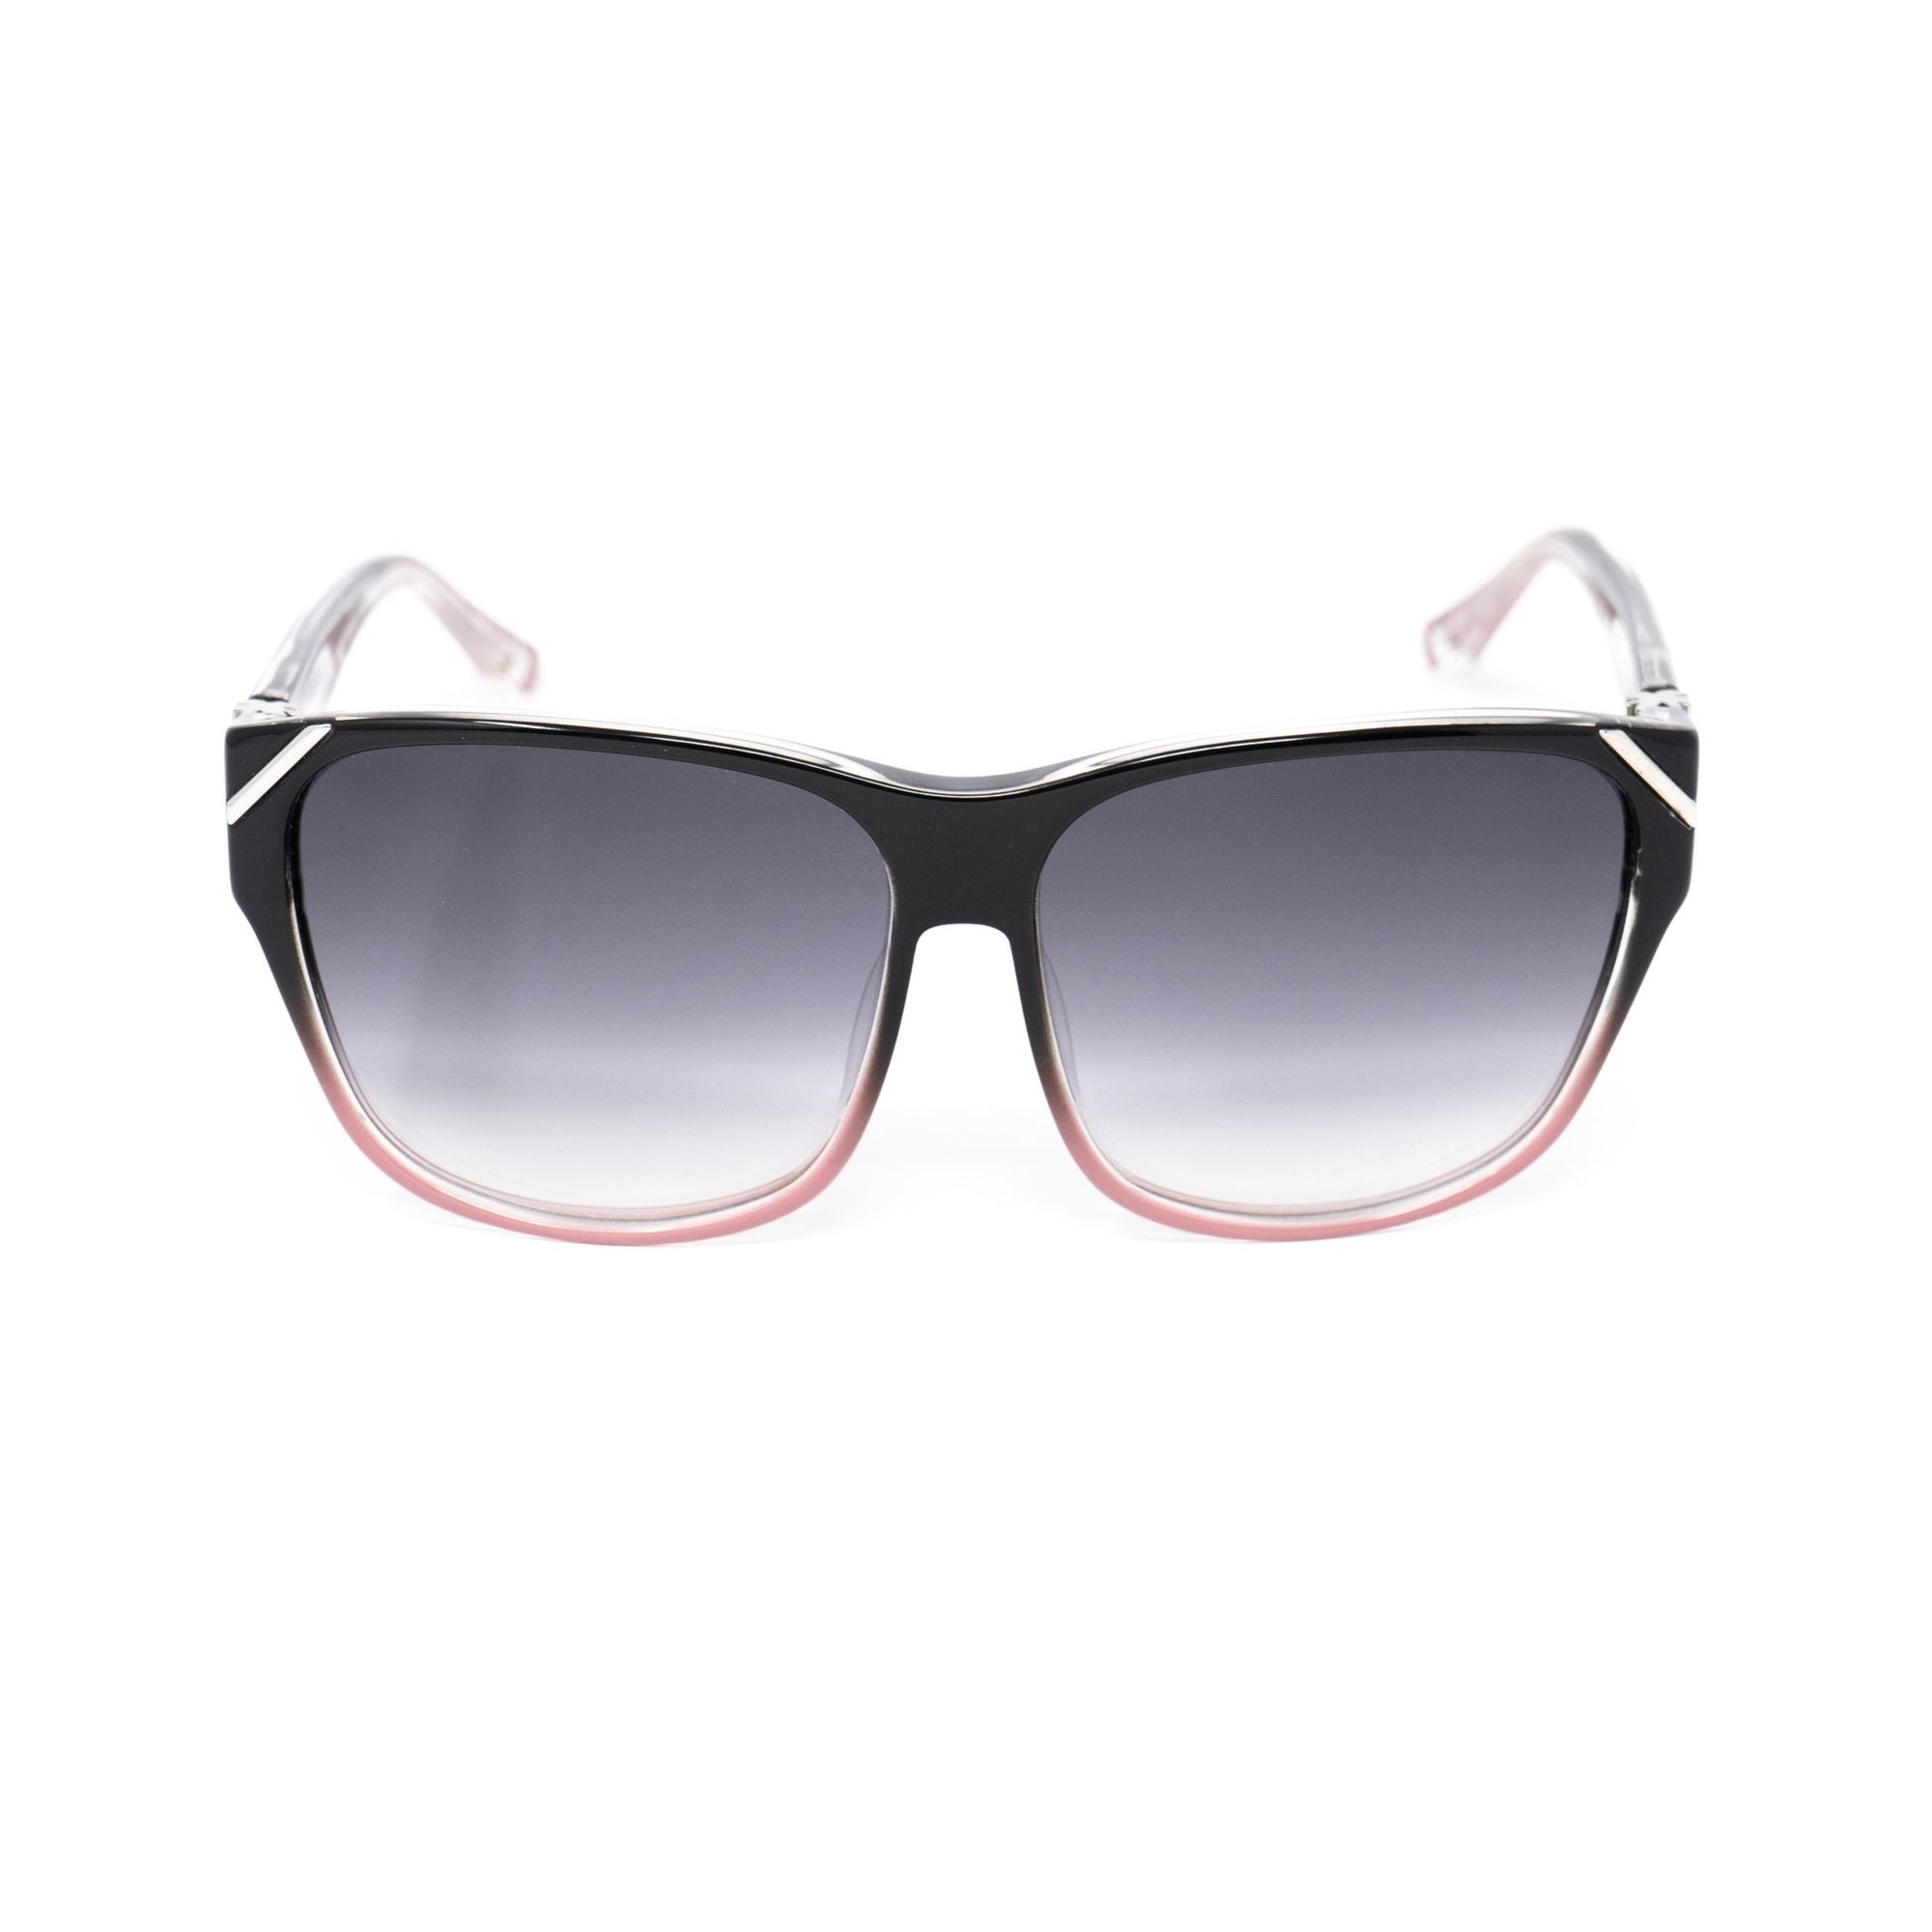 Yohji Yamamoto Unisex Sunglasses Square Black/Pink and Grey Lenses - YY15C4SUN - Watches & Crystals